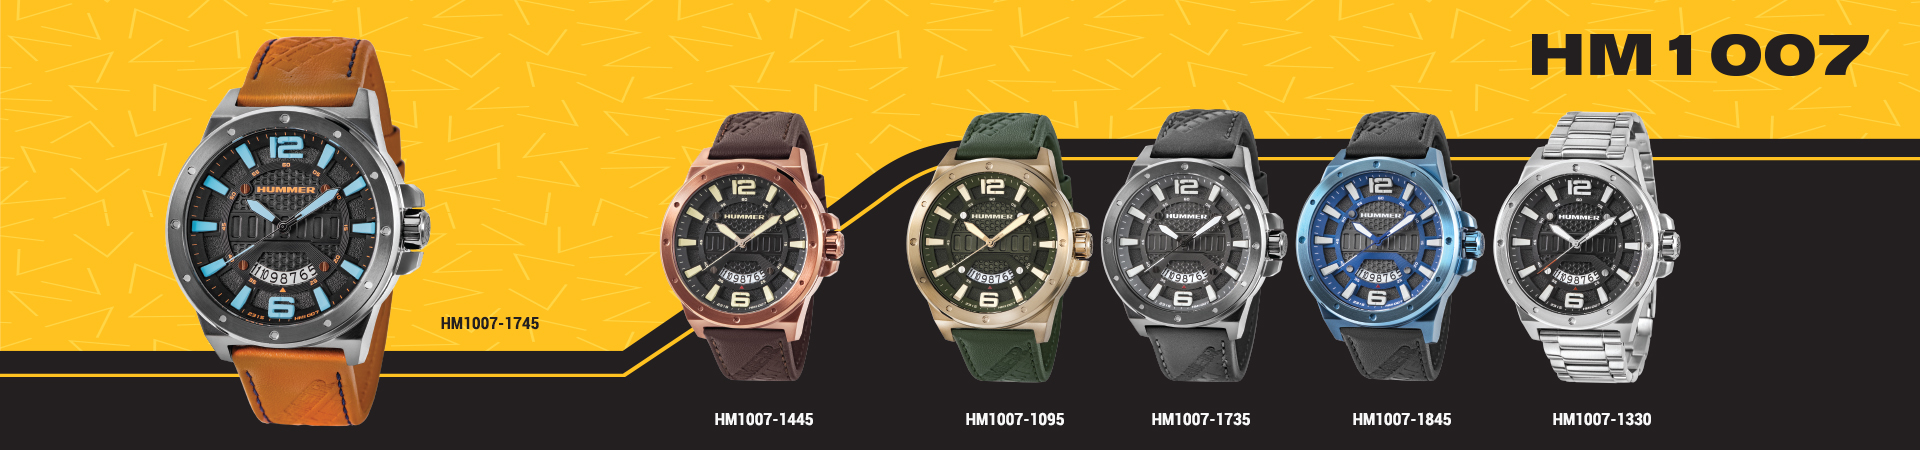 Hummer Watch Collection HM1007